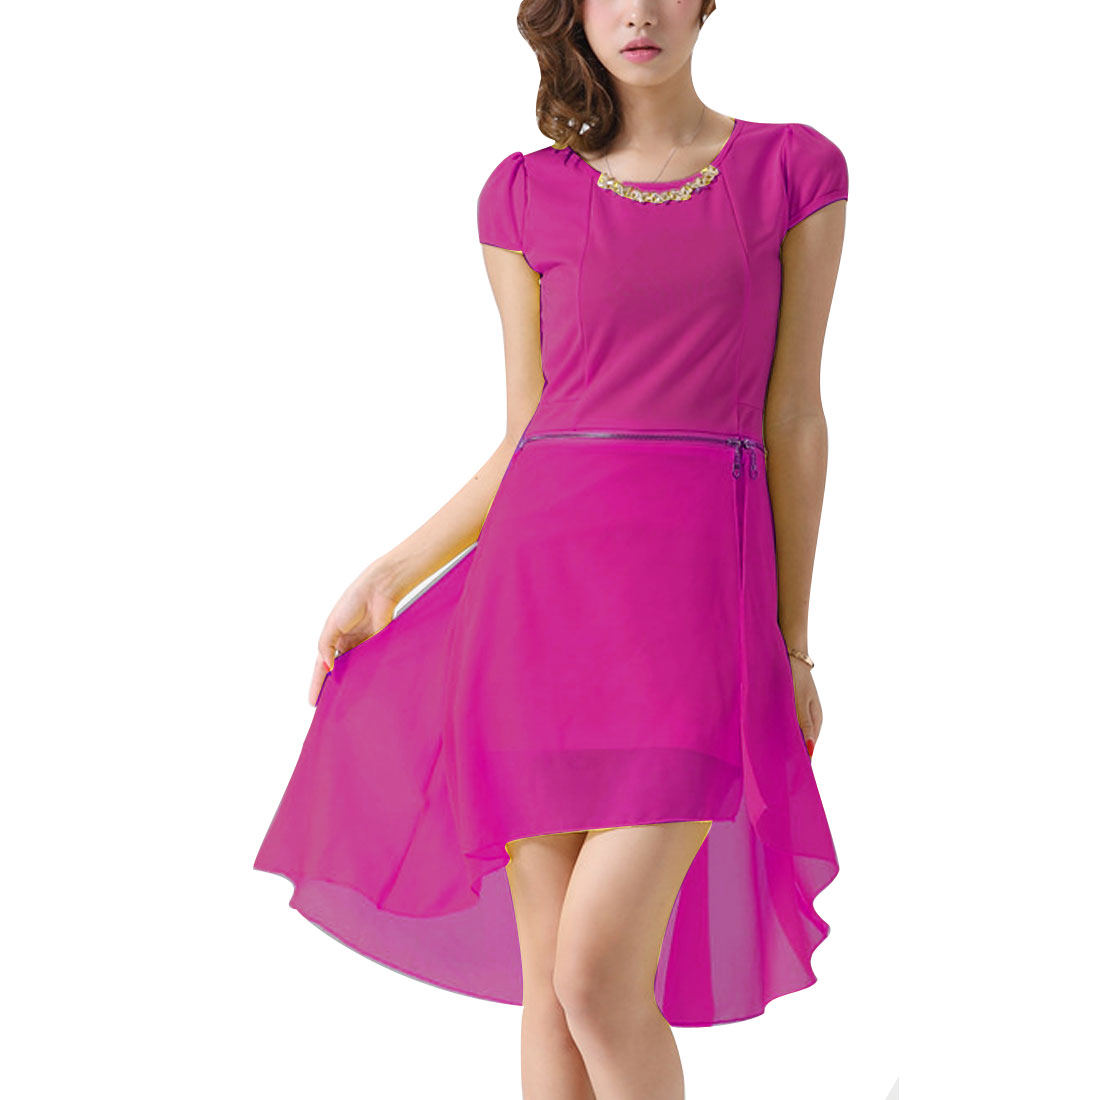 Ladies Chic Zipper Waist Irregular Hem Fuchsia Convertible Mini Dress XS